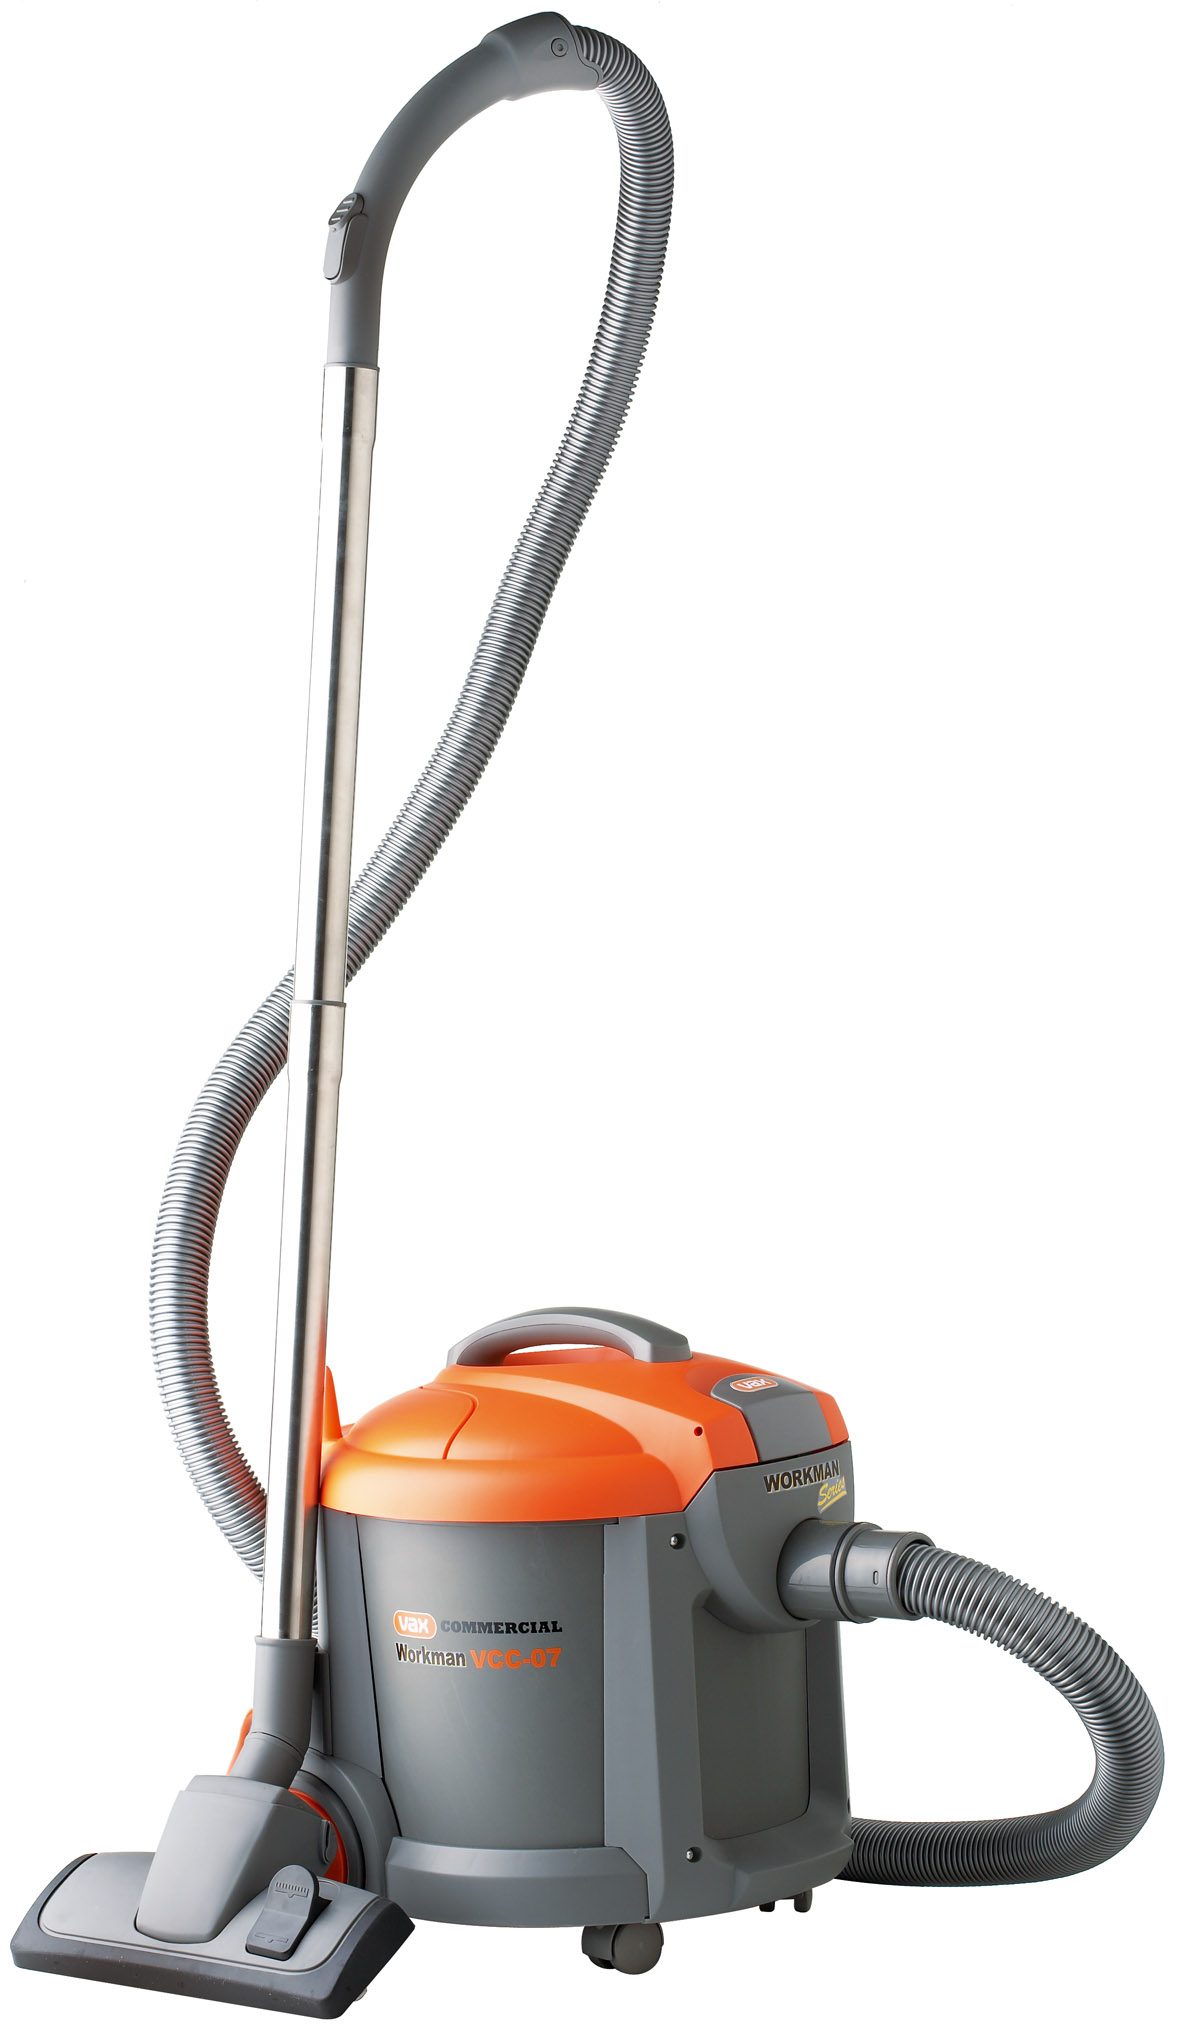 Vax Vcc 07 Workman Commercial Vacuum Cleaner With Hepa